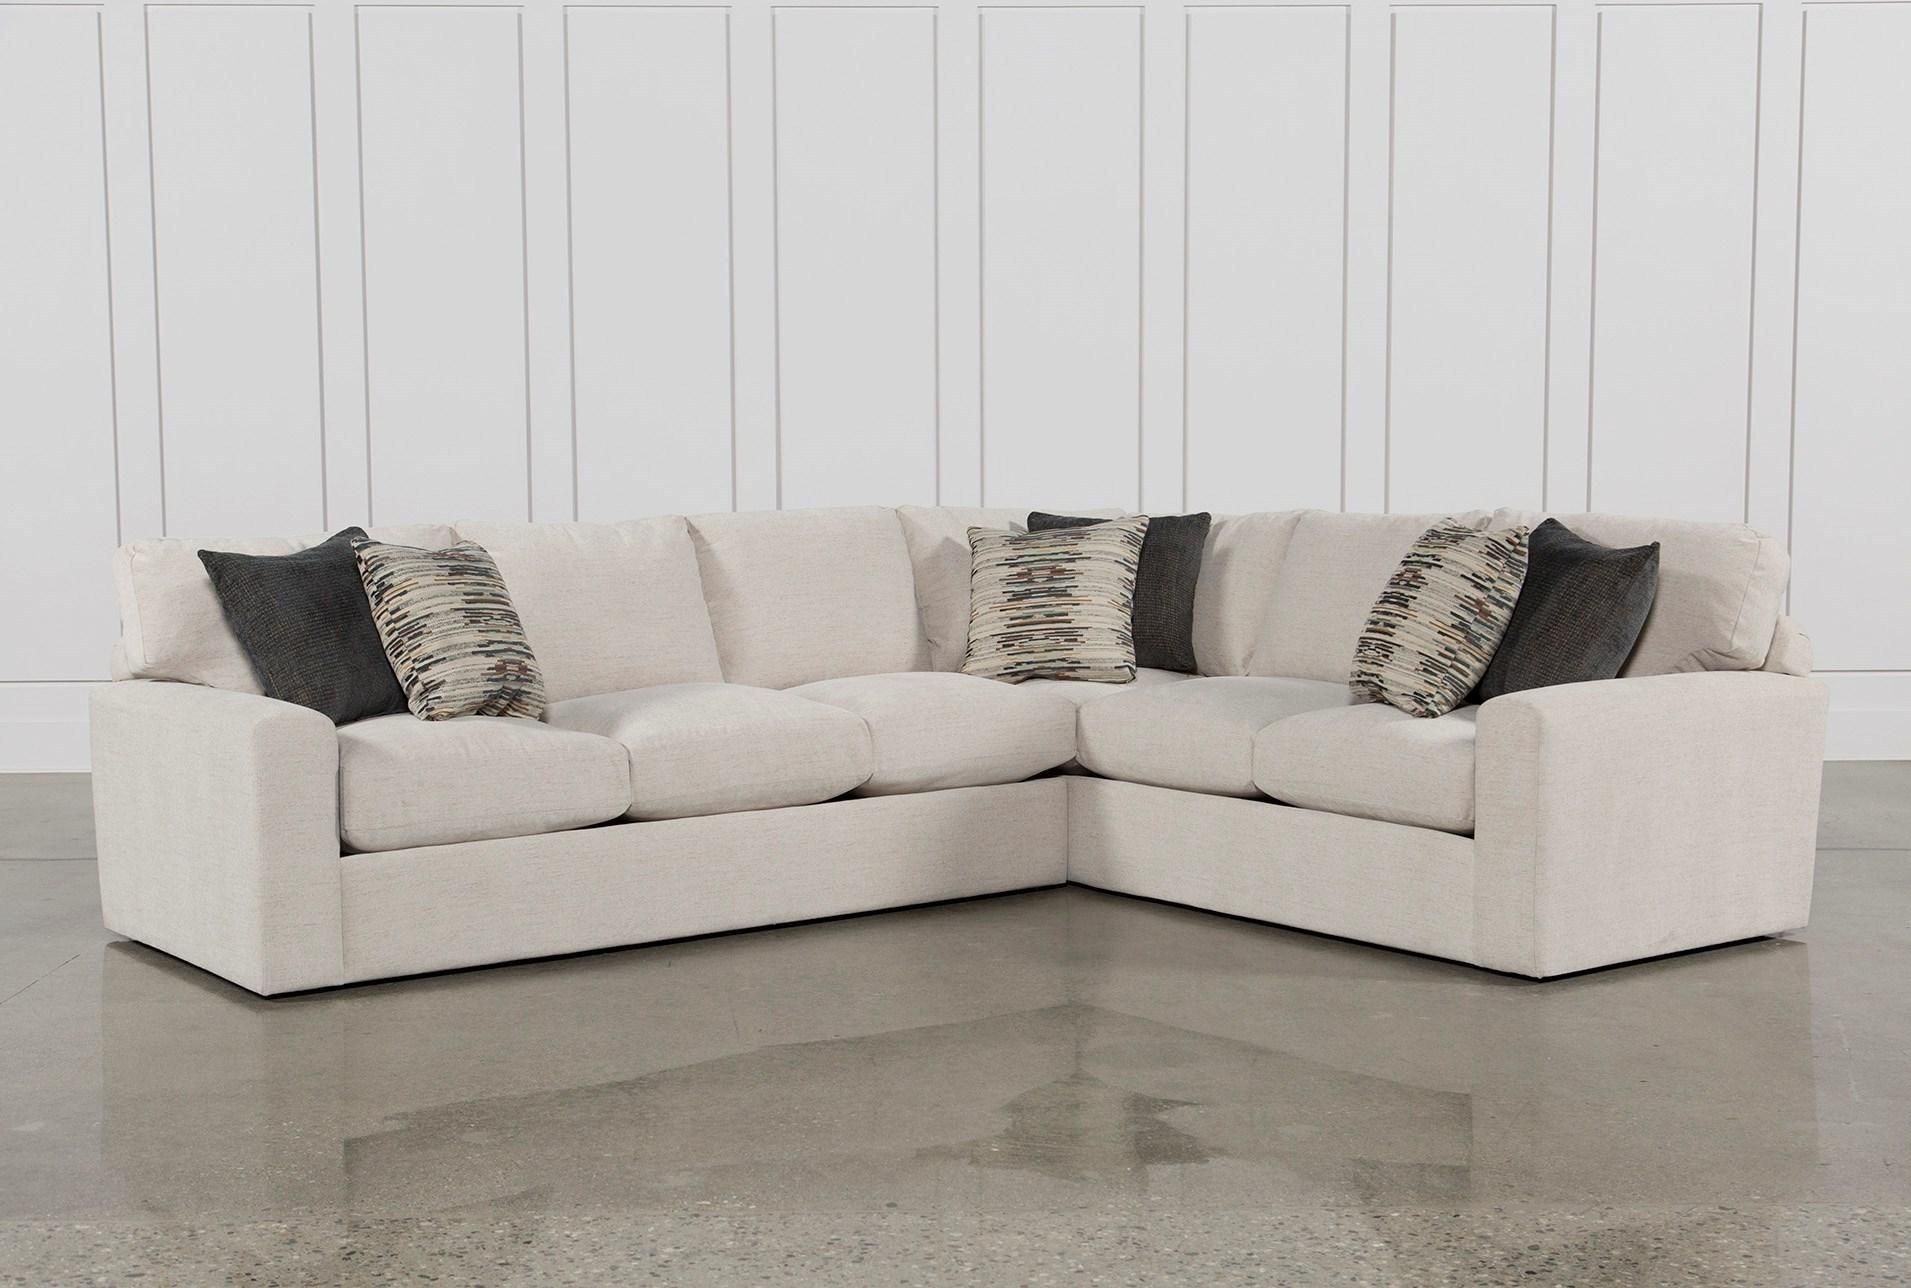 Bowen 2 Piece Sectional, White, Sofas | Living Rooms, Sinks And Room With Adeline 3 Piece Sectionals (View 6 of 25)